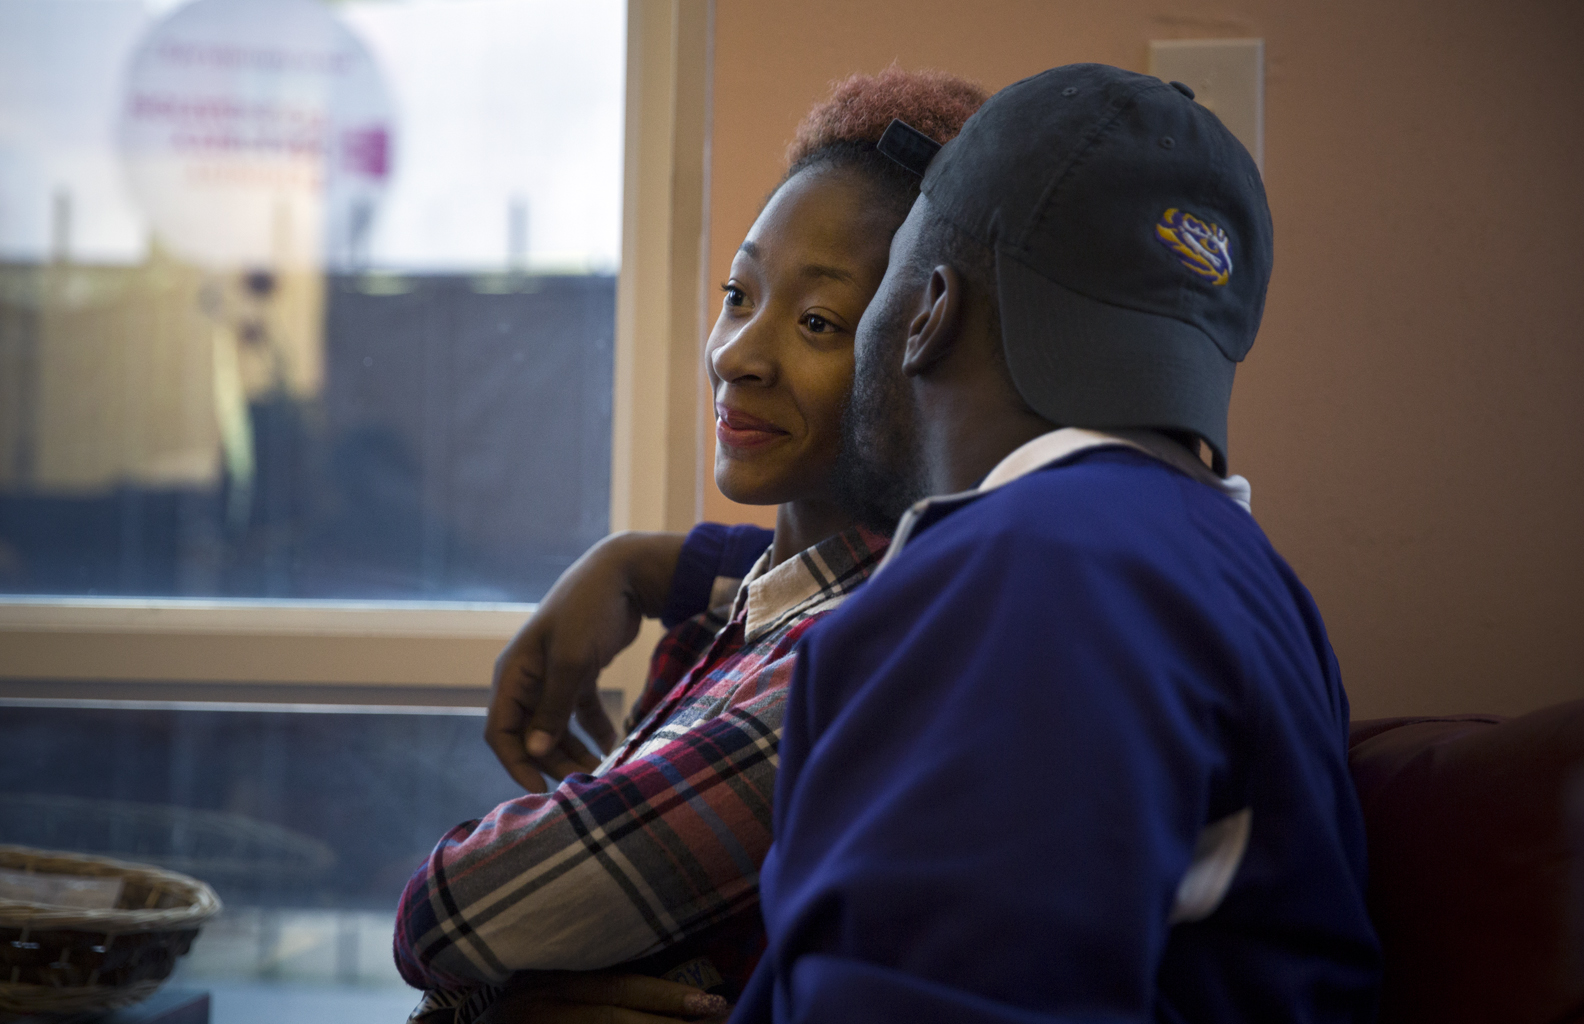 Mikissa Oliver, 20, an accounting student at Jackson State University, is comforted by her boyfriend Terrance Smith, 24, a high-school history teacher, as they wait for her to be called back to take the abortion pill at Jackson Women's Health Organization. Mikissa chose to do a pill abortion which shewill do after she receives counseling and returns for a second visit to the clinic after a 24-hour mandatory waiting period.